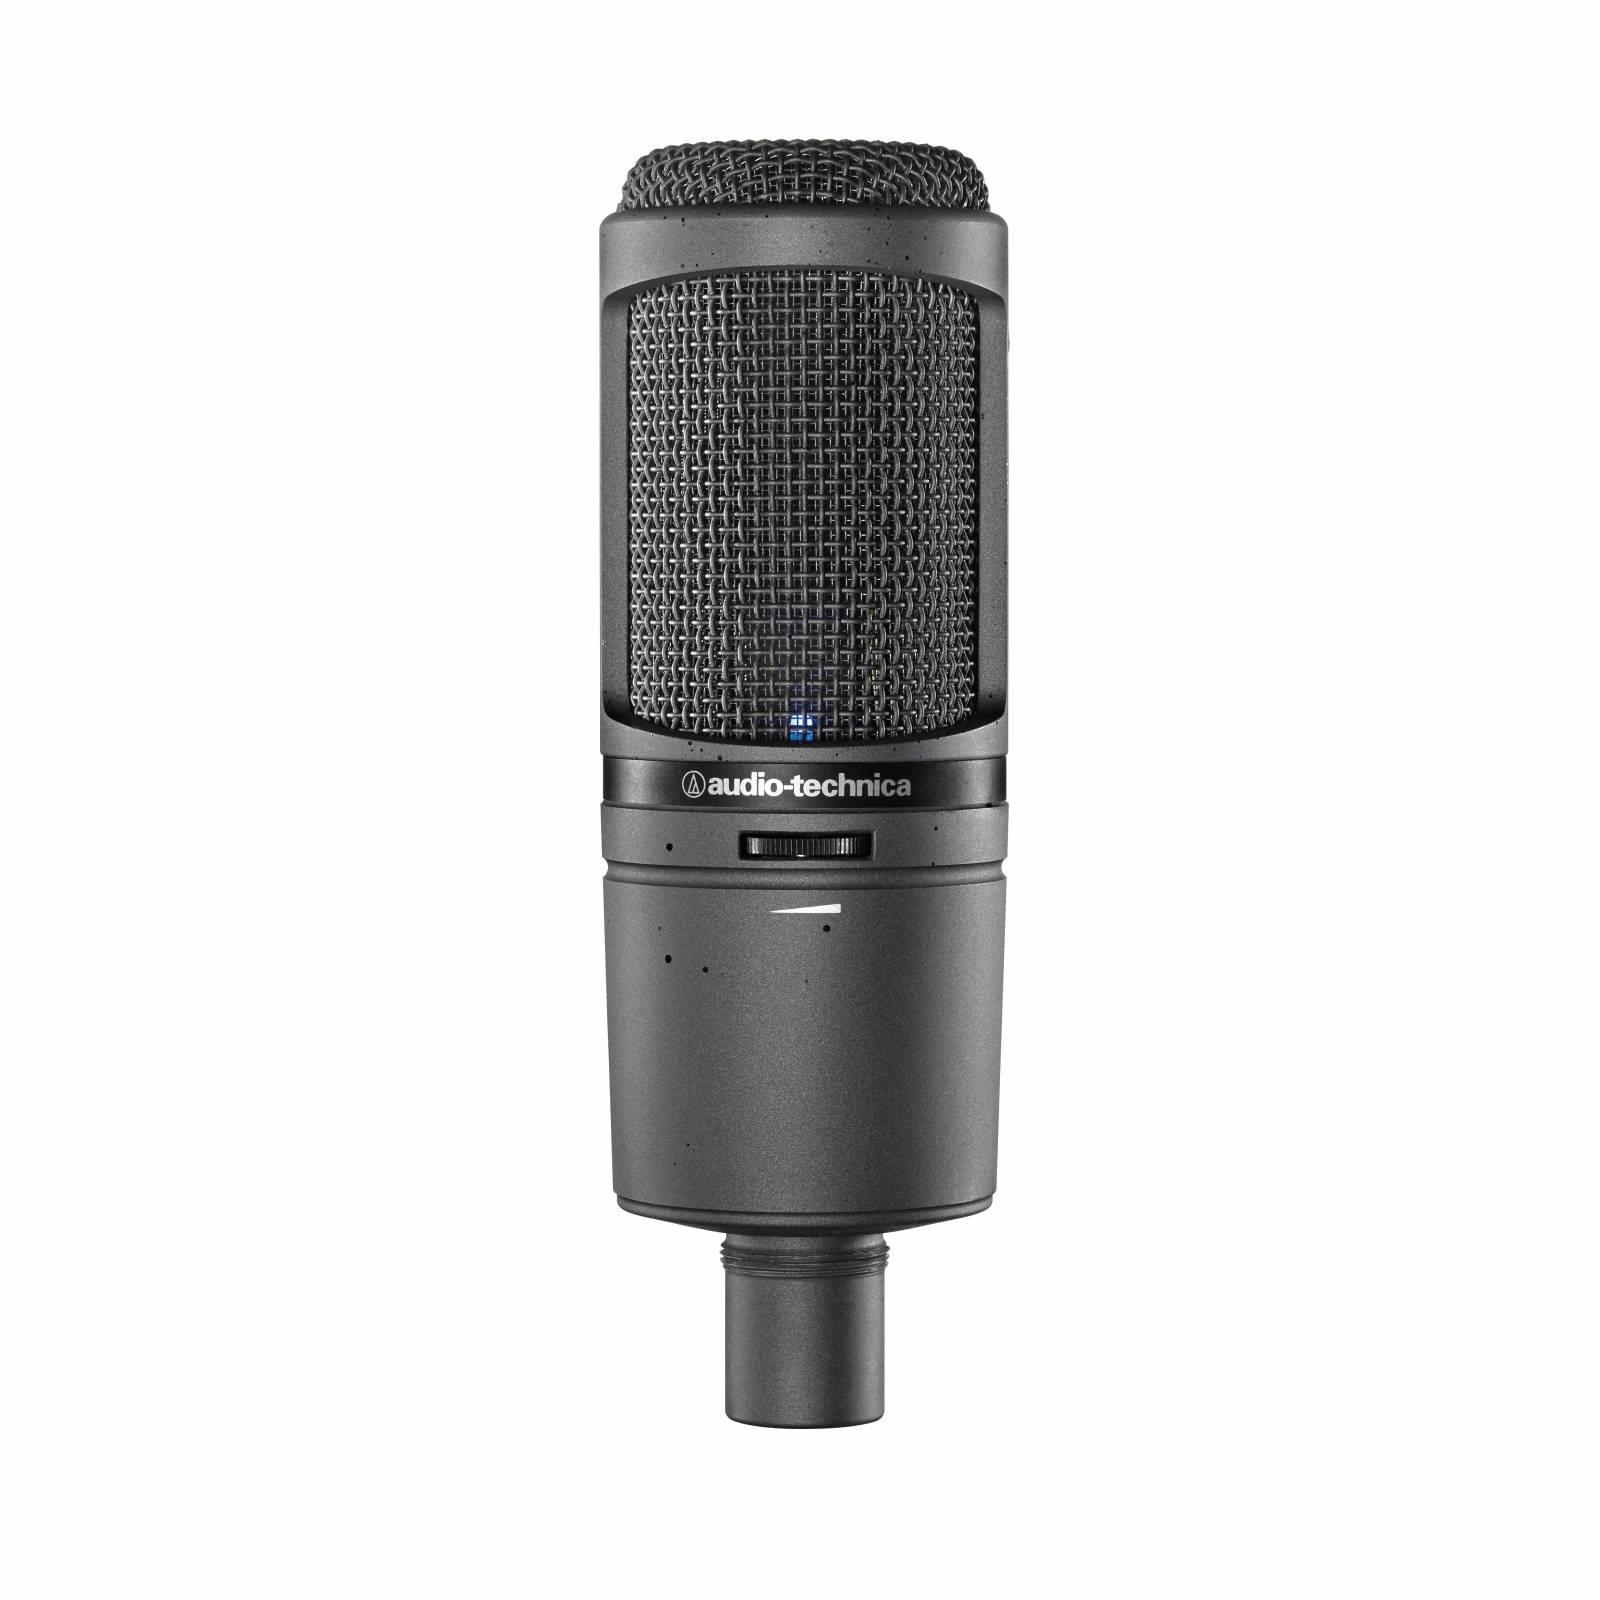 audio technica at2020usbi usb microphone with lightning connector usb microphones from inta. Black Bedroom Furniture Sets. Home Design Ideas